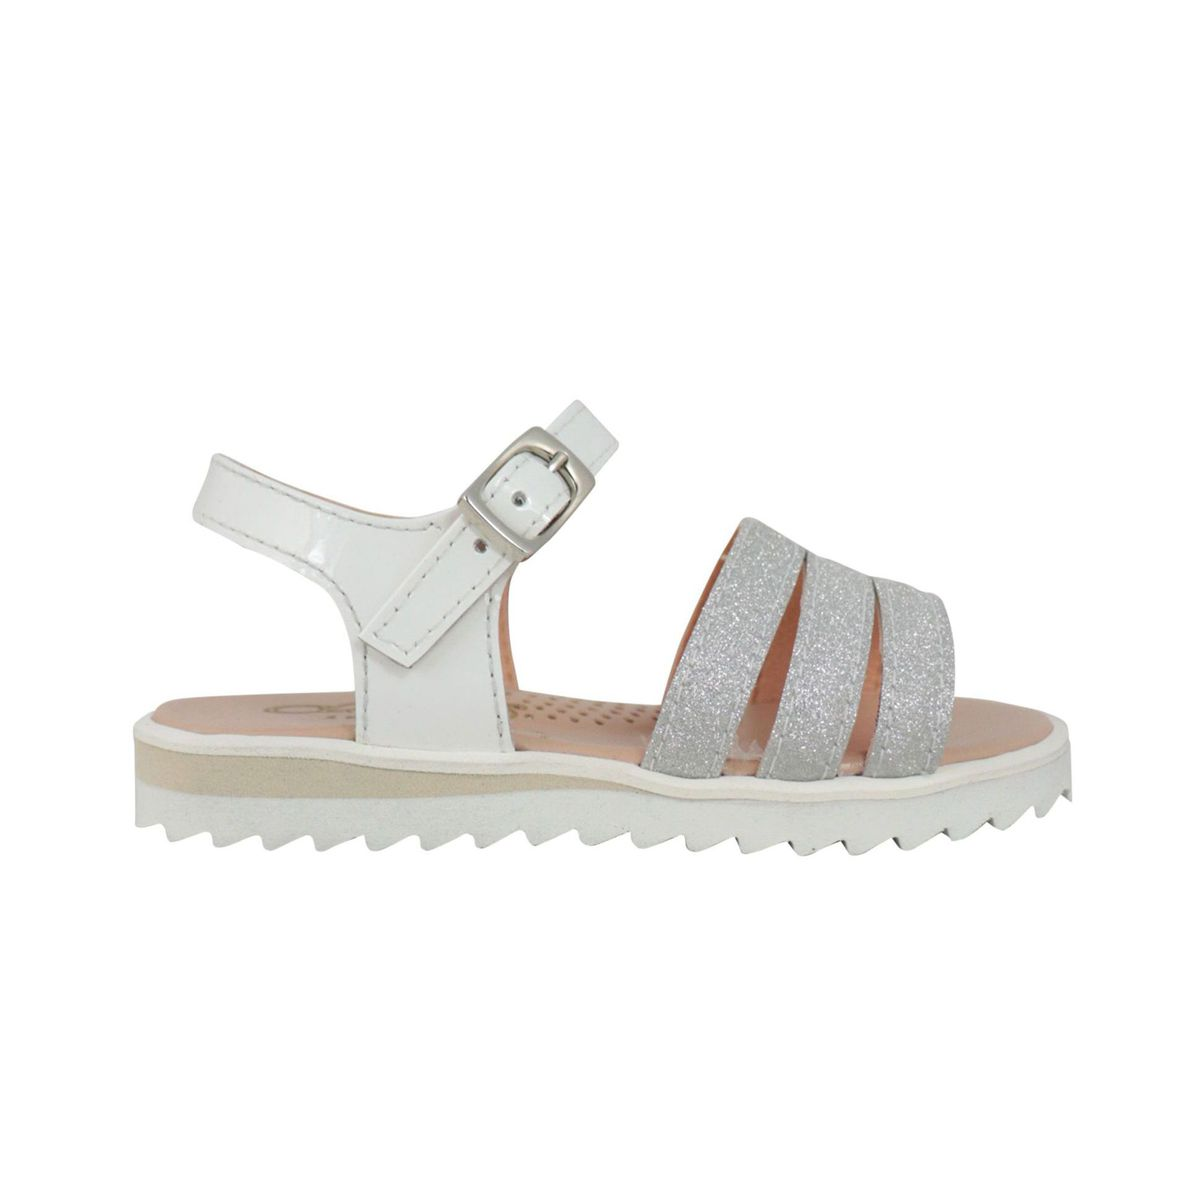 Leather sandal with glitter bands White / silver Clarys